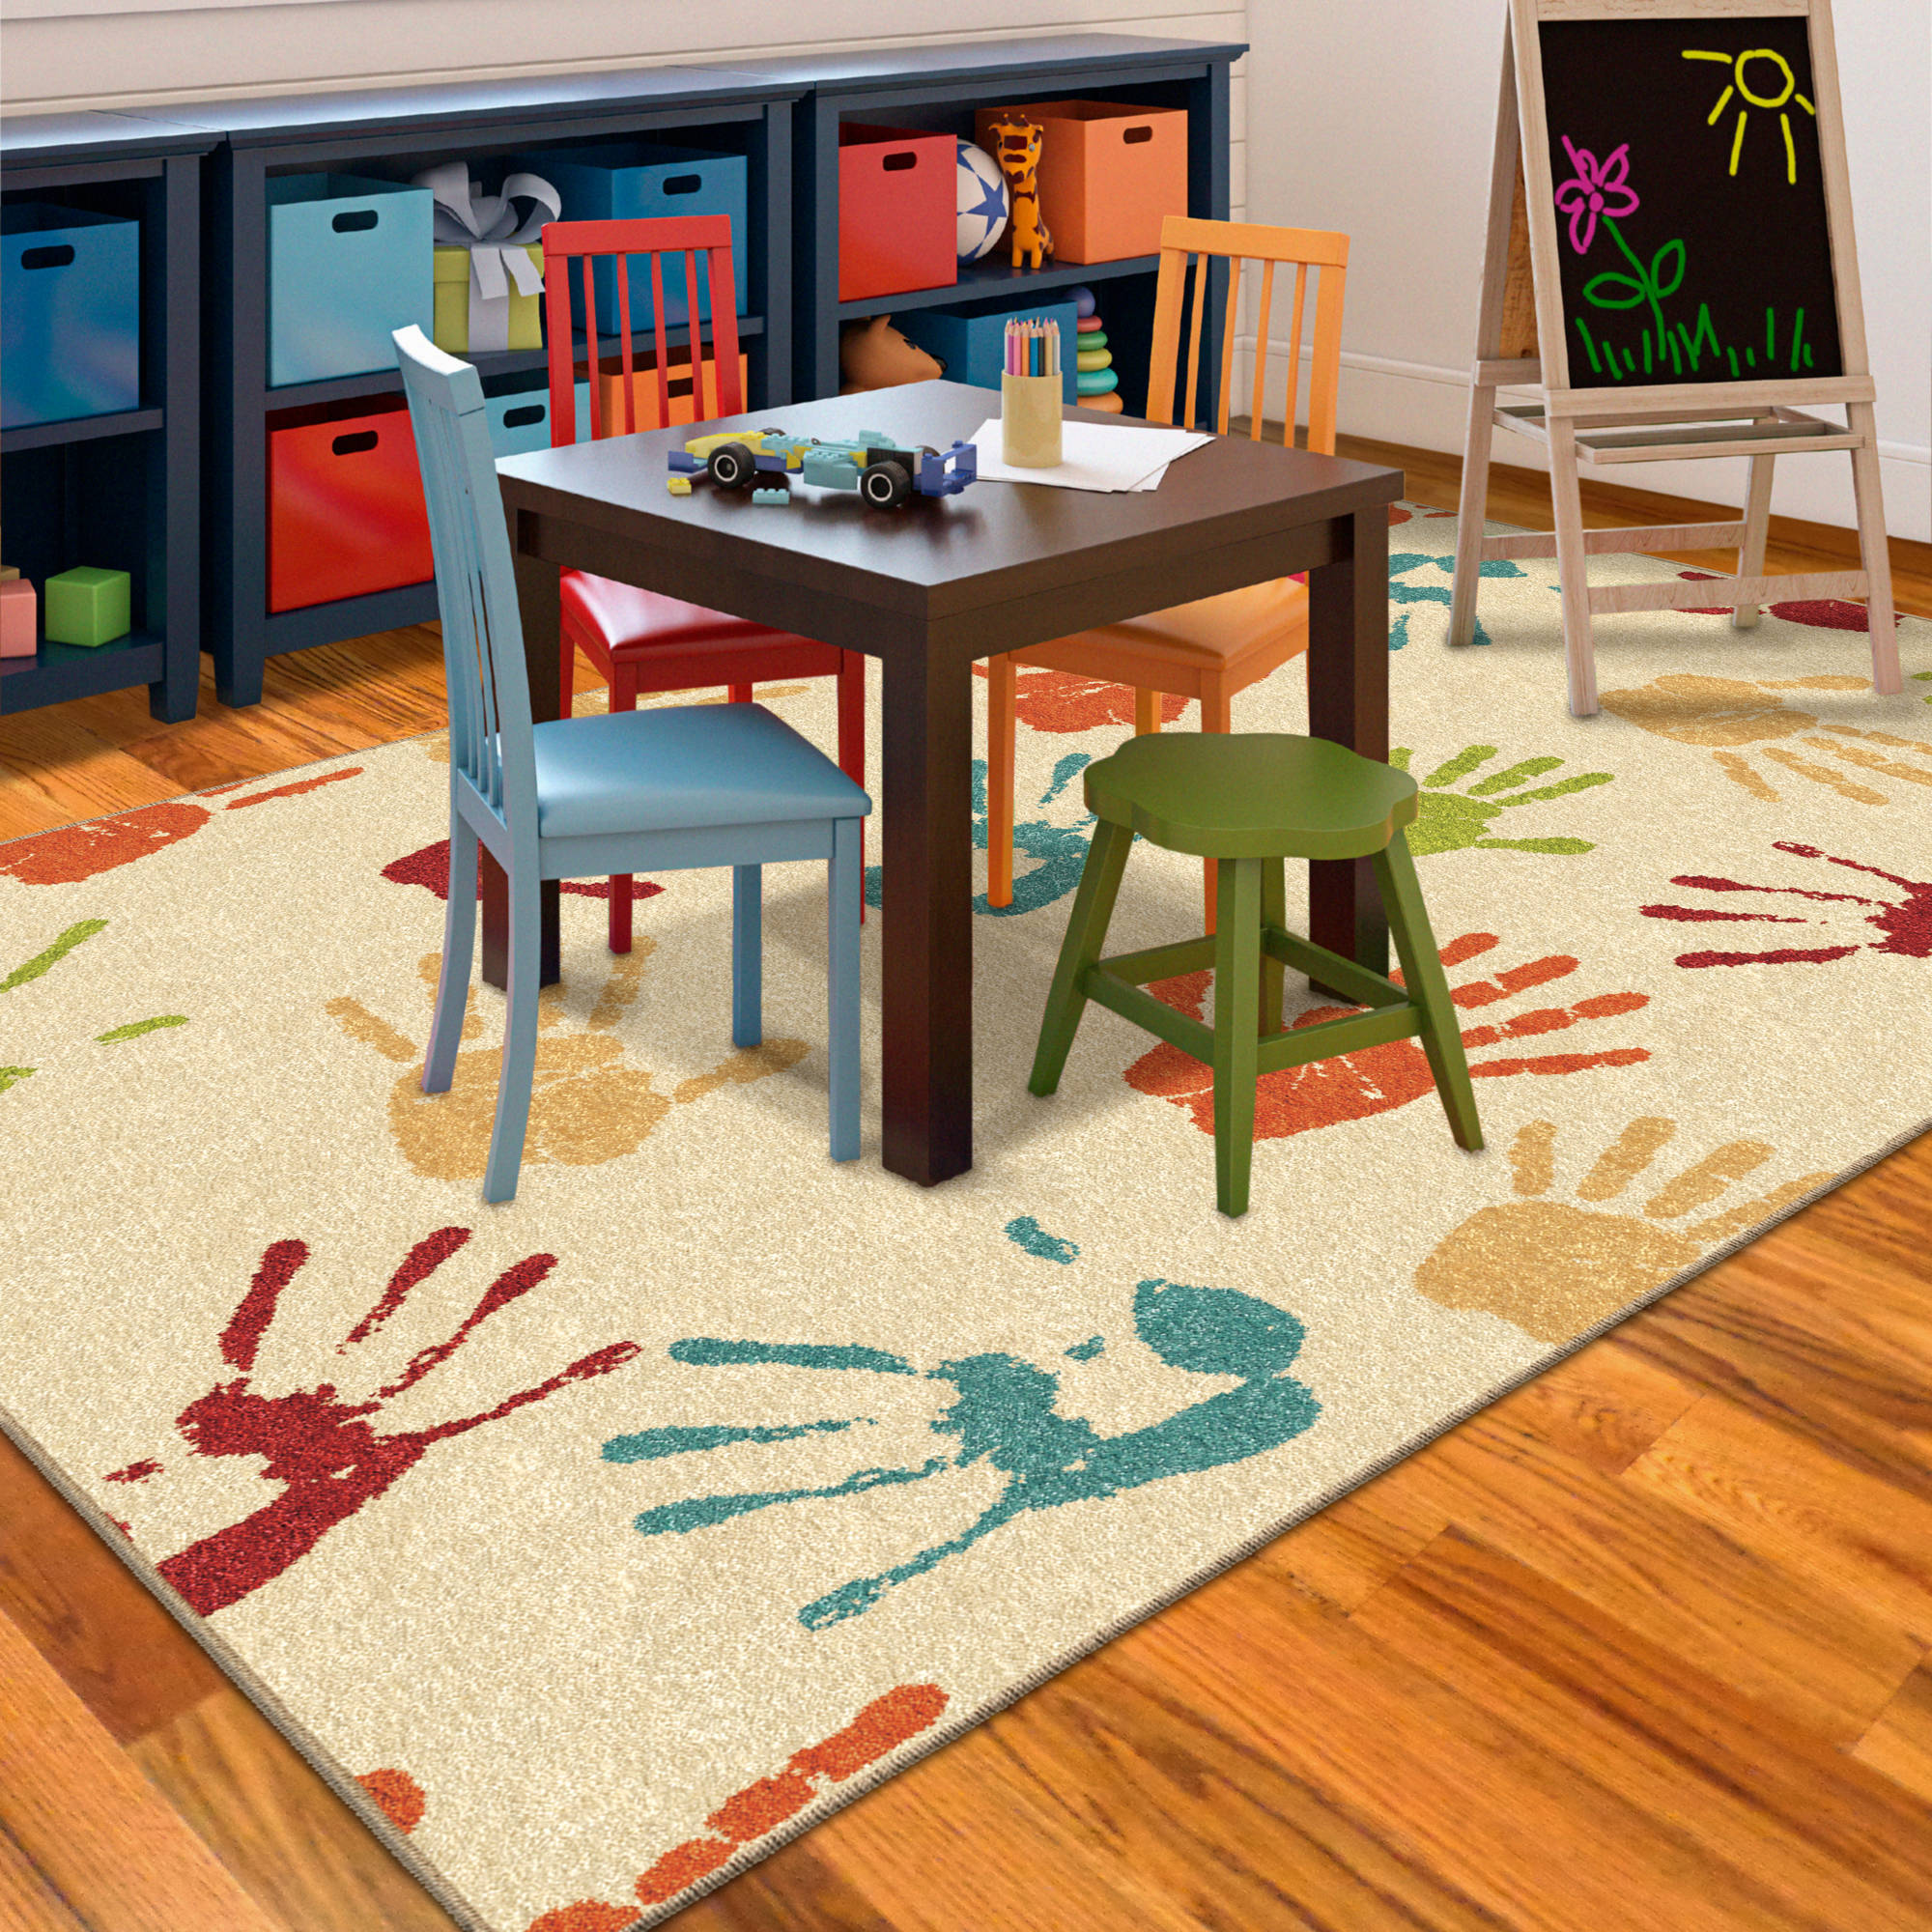 Kids Hand Prints Area Rug Colorful Fun Kid's Bedroom